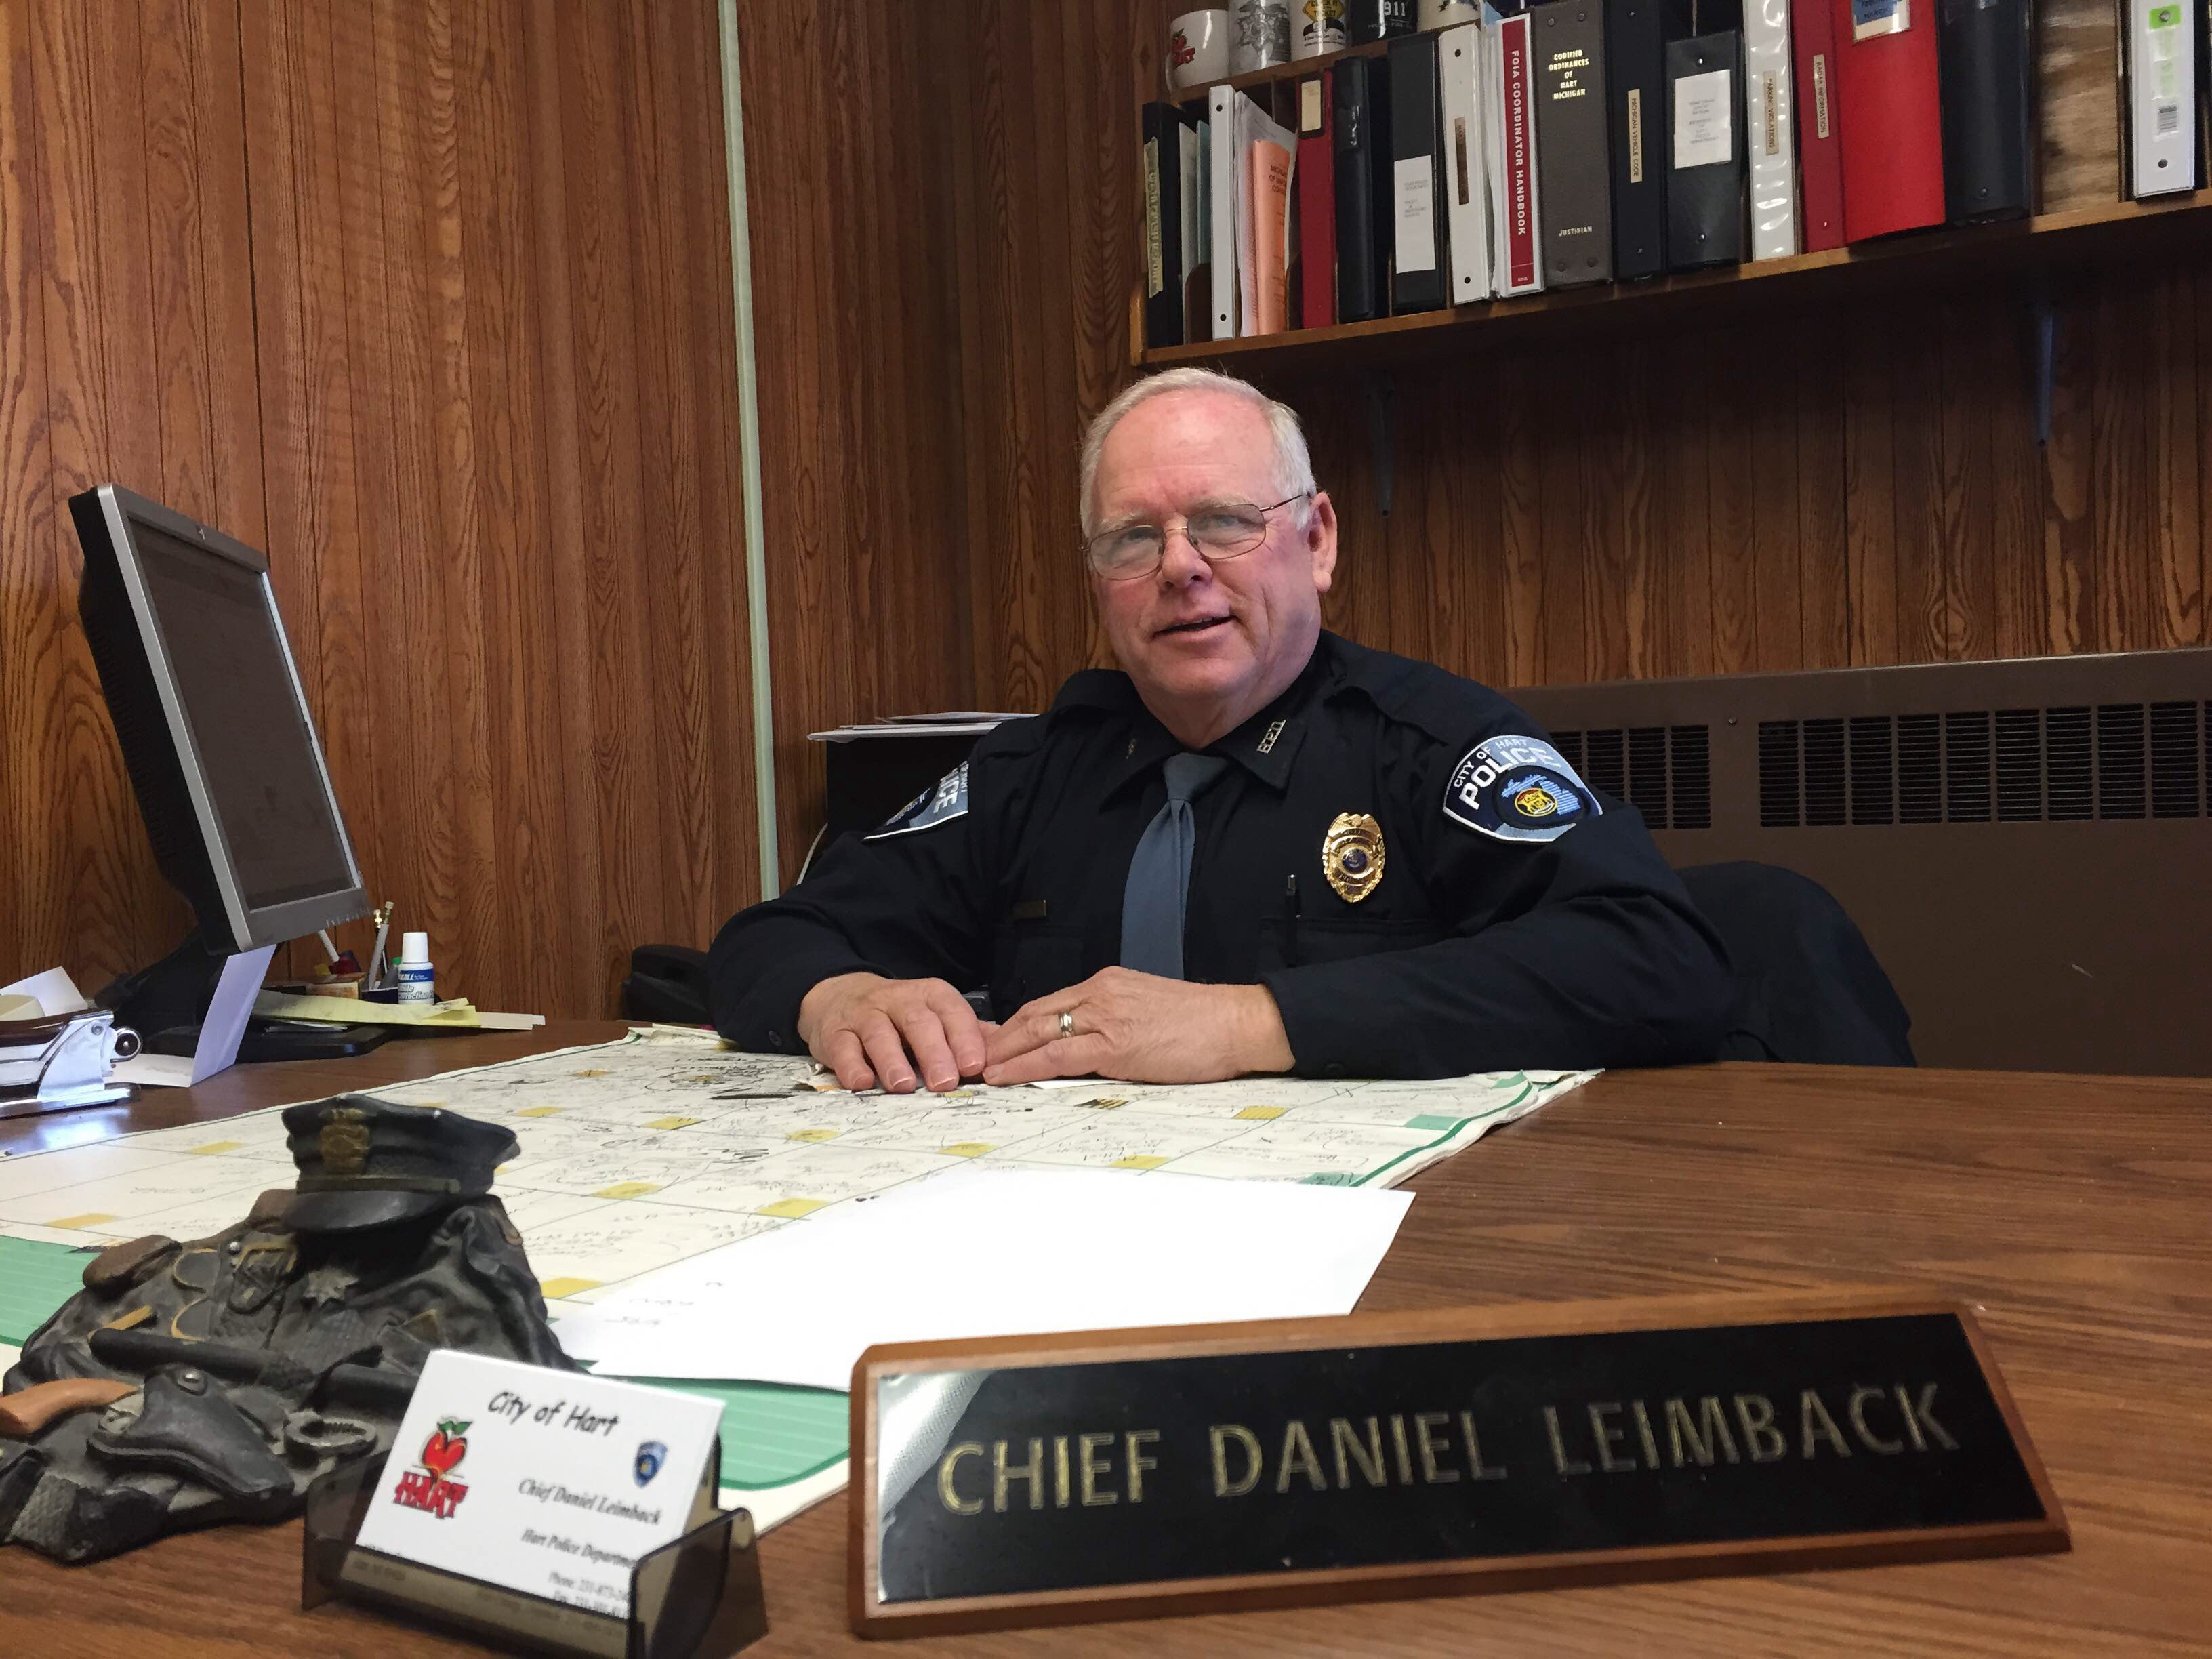 Living in the OC: Chief Leimback reflects on 40-year career